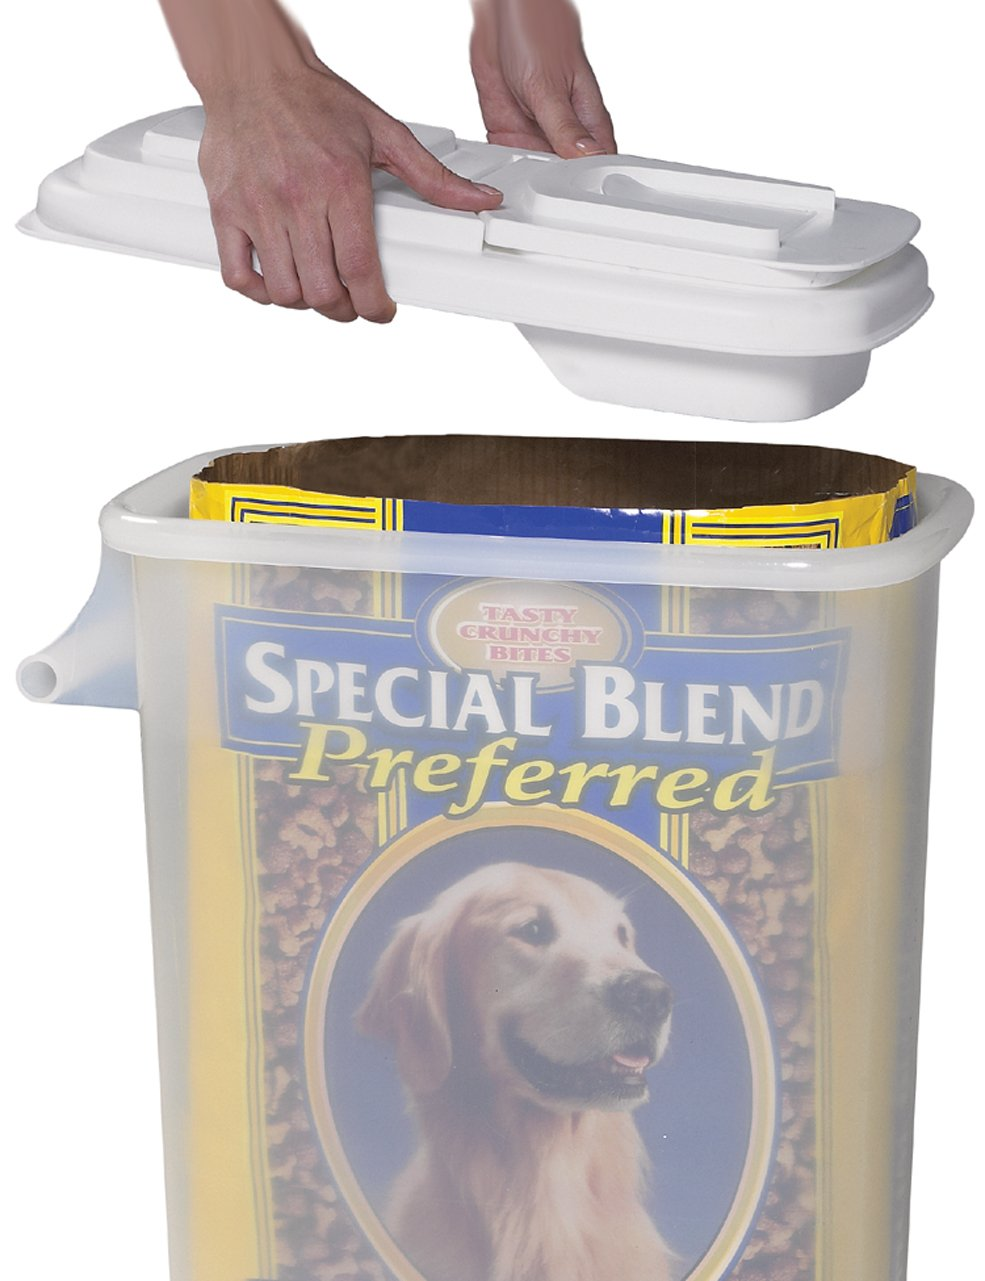 Large (Up to 22lb) Fresh Dry Dog & Cat Food Plastic Storage Container With Flip Lid & Pour Spout For Pet Food, and Bird Seed, BPA Free by Buddeez by Buddeez (Image #2)